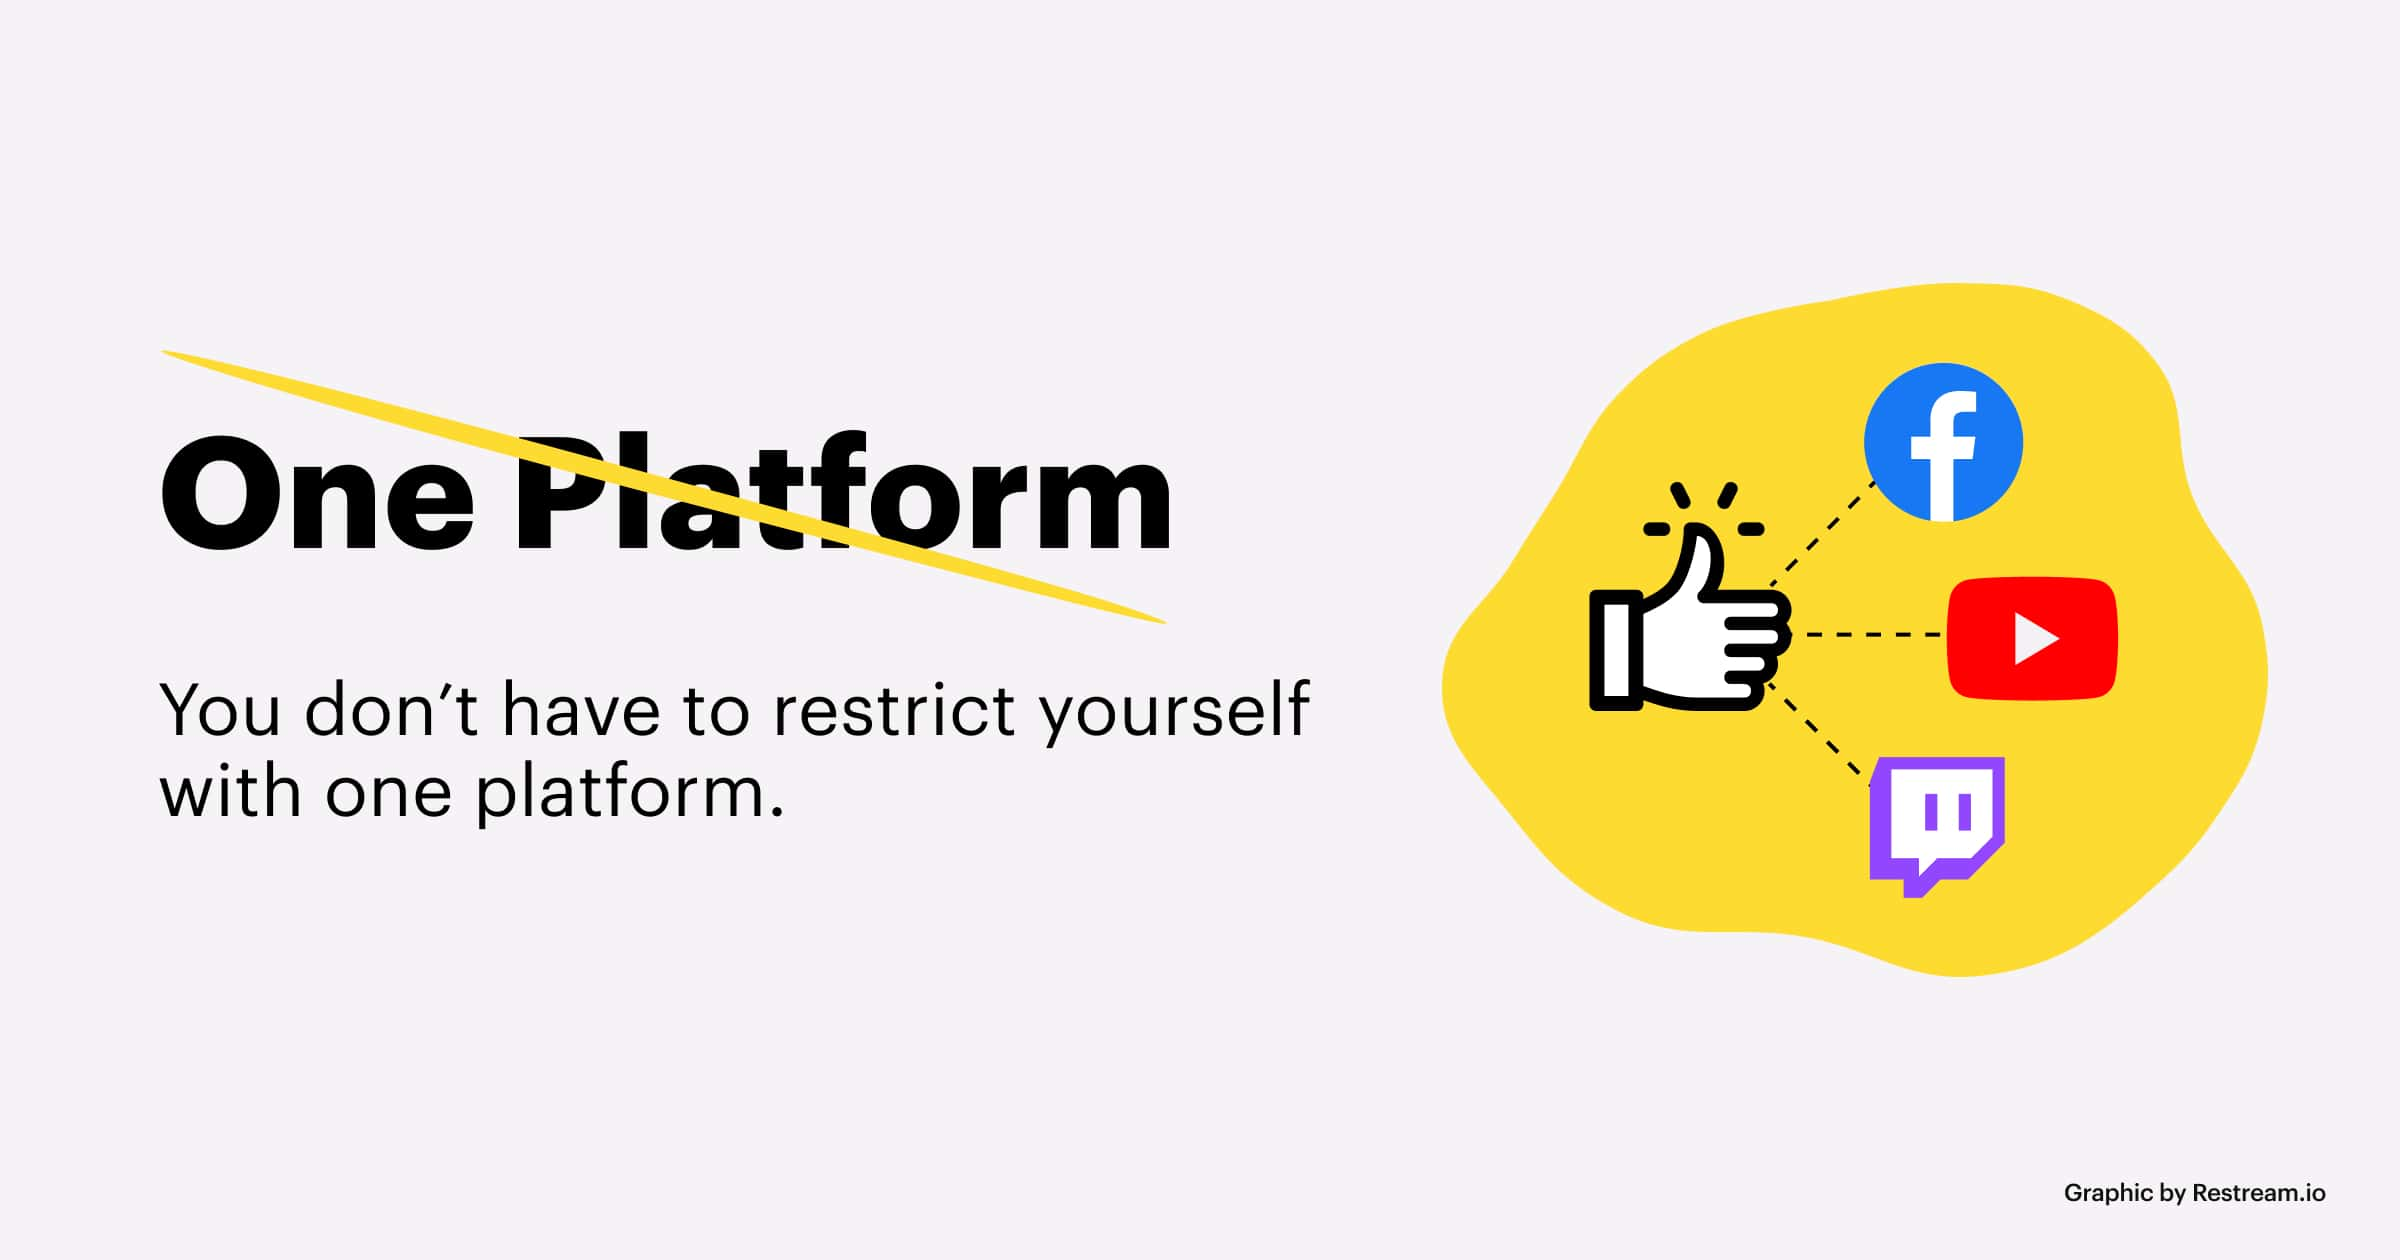 You don't have to restrict yourself with one platform